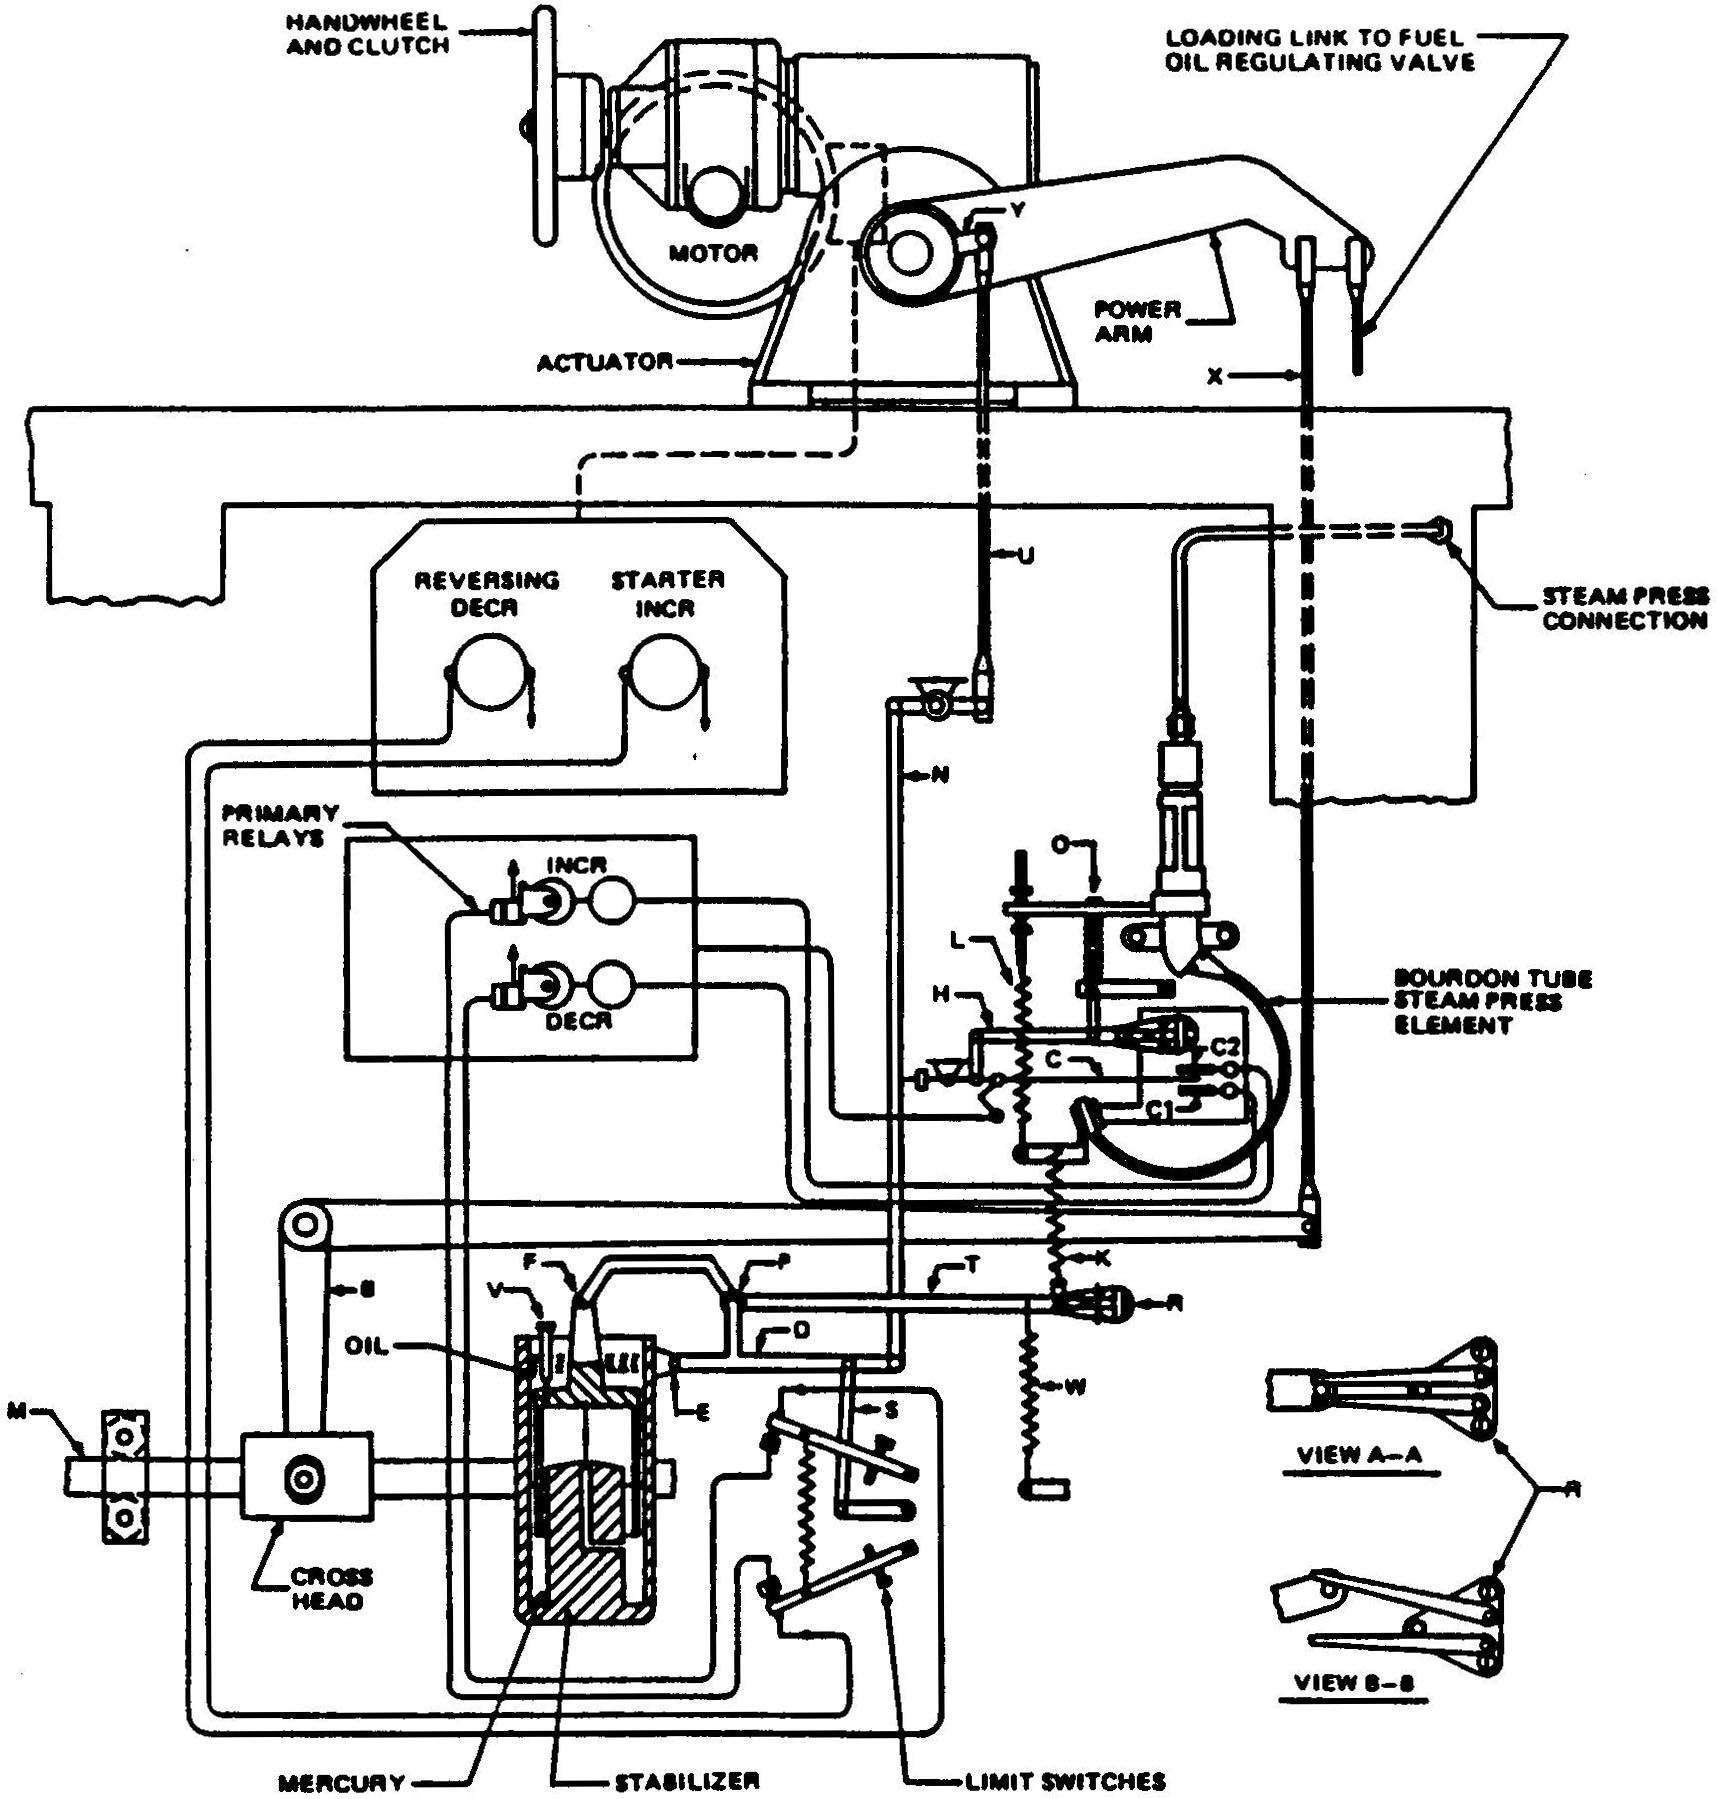 Tsps Engineering Manual Pressure Control Switch Wiring Diagram Combustion System Steam Regulator